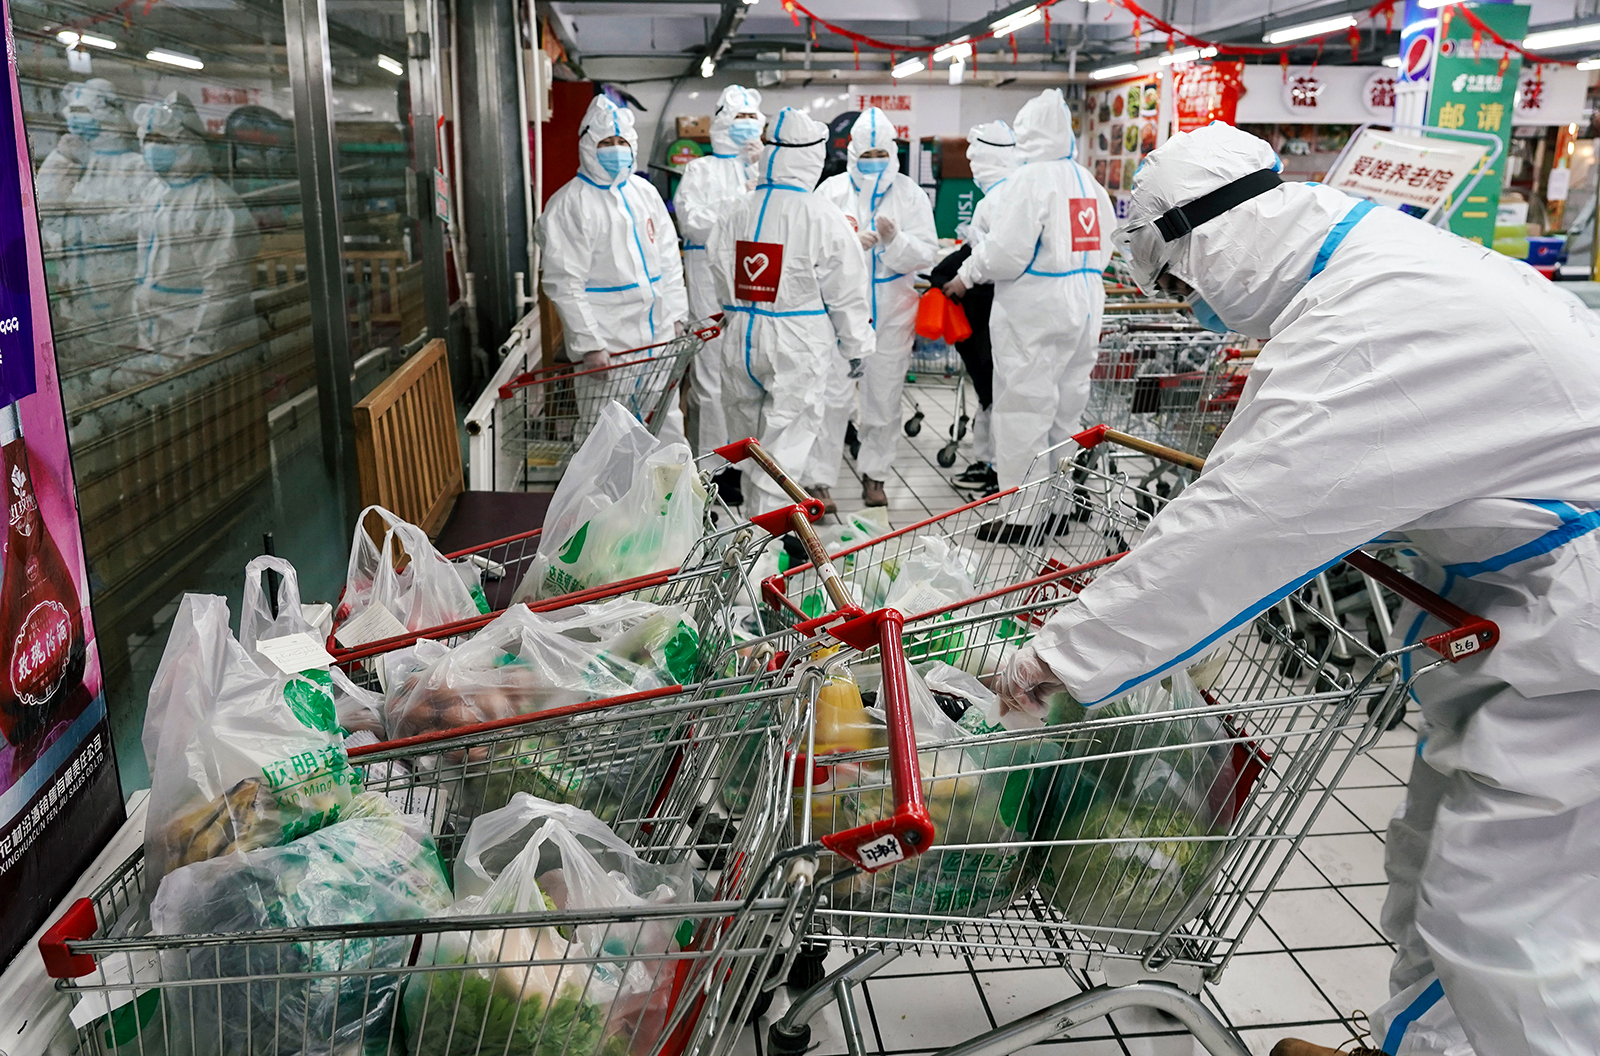 Volunteers check orders of daily necessity goods at a supermarket according to wish lists of residents in quarantine in Tonghua, China, on January 24.